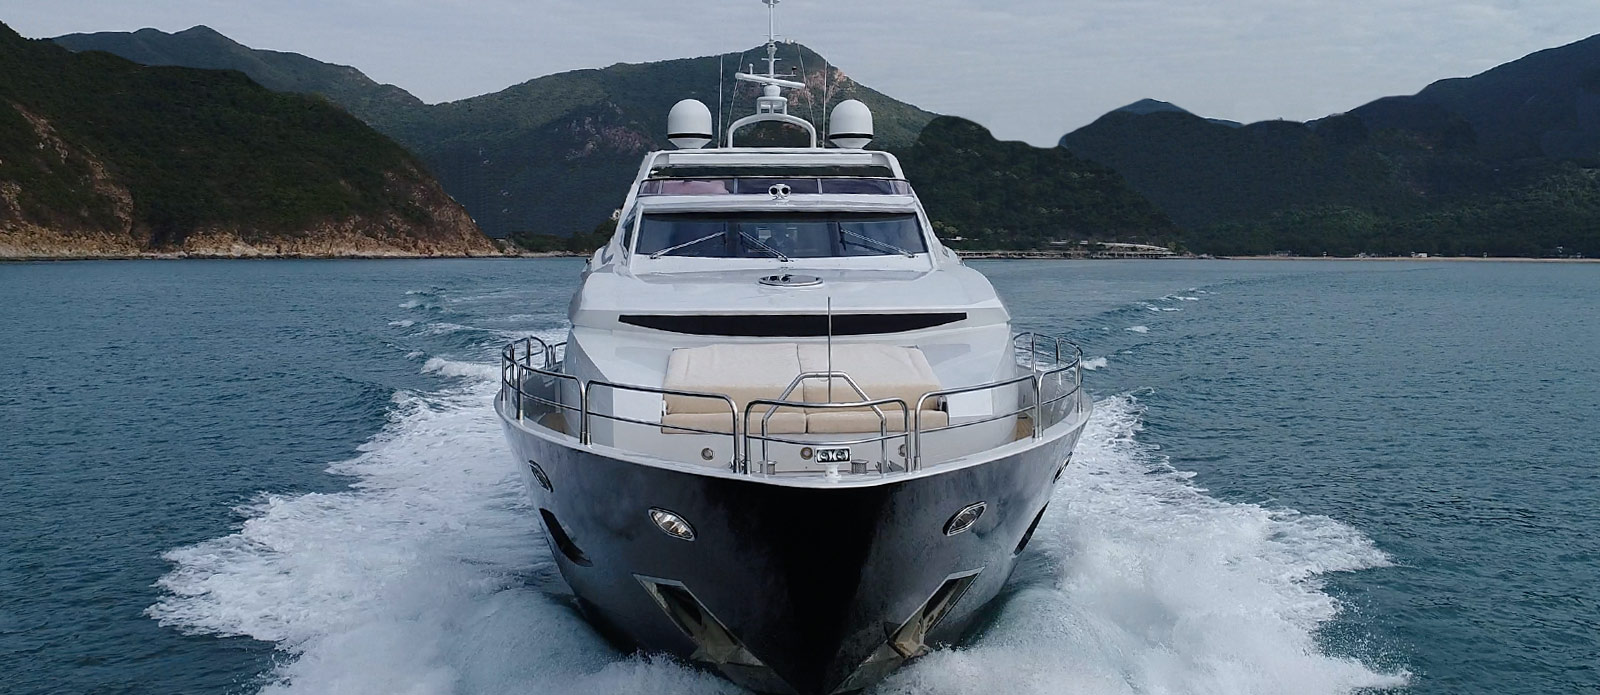 Sunseeker-30-Metre-Yacht-Coraysa-Head-On